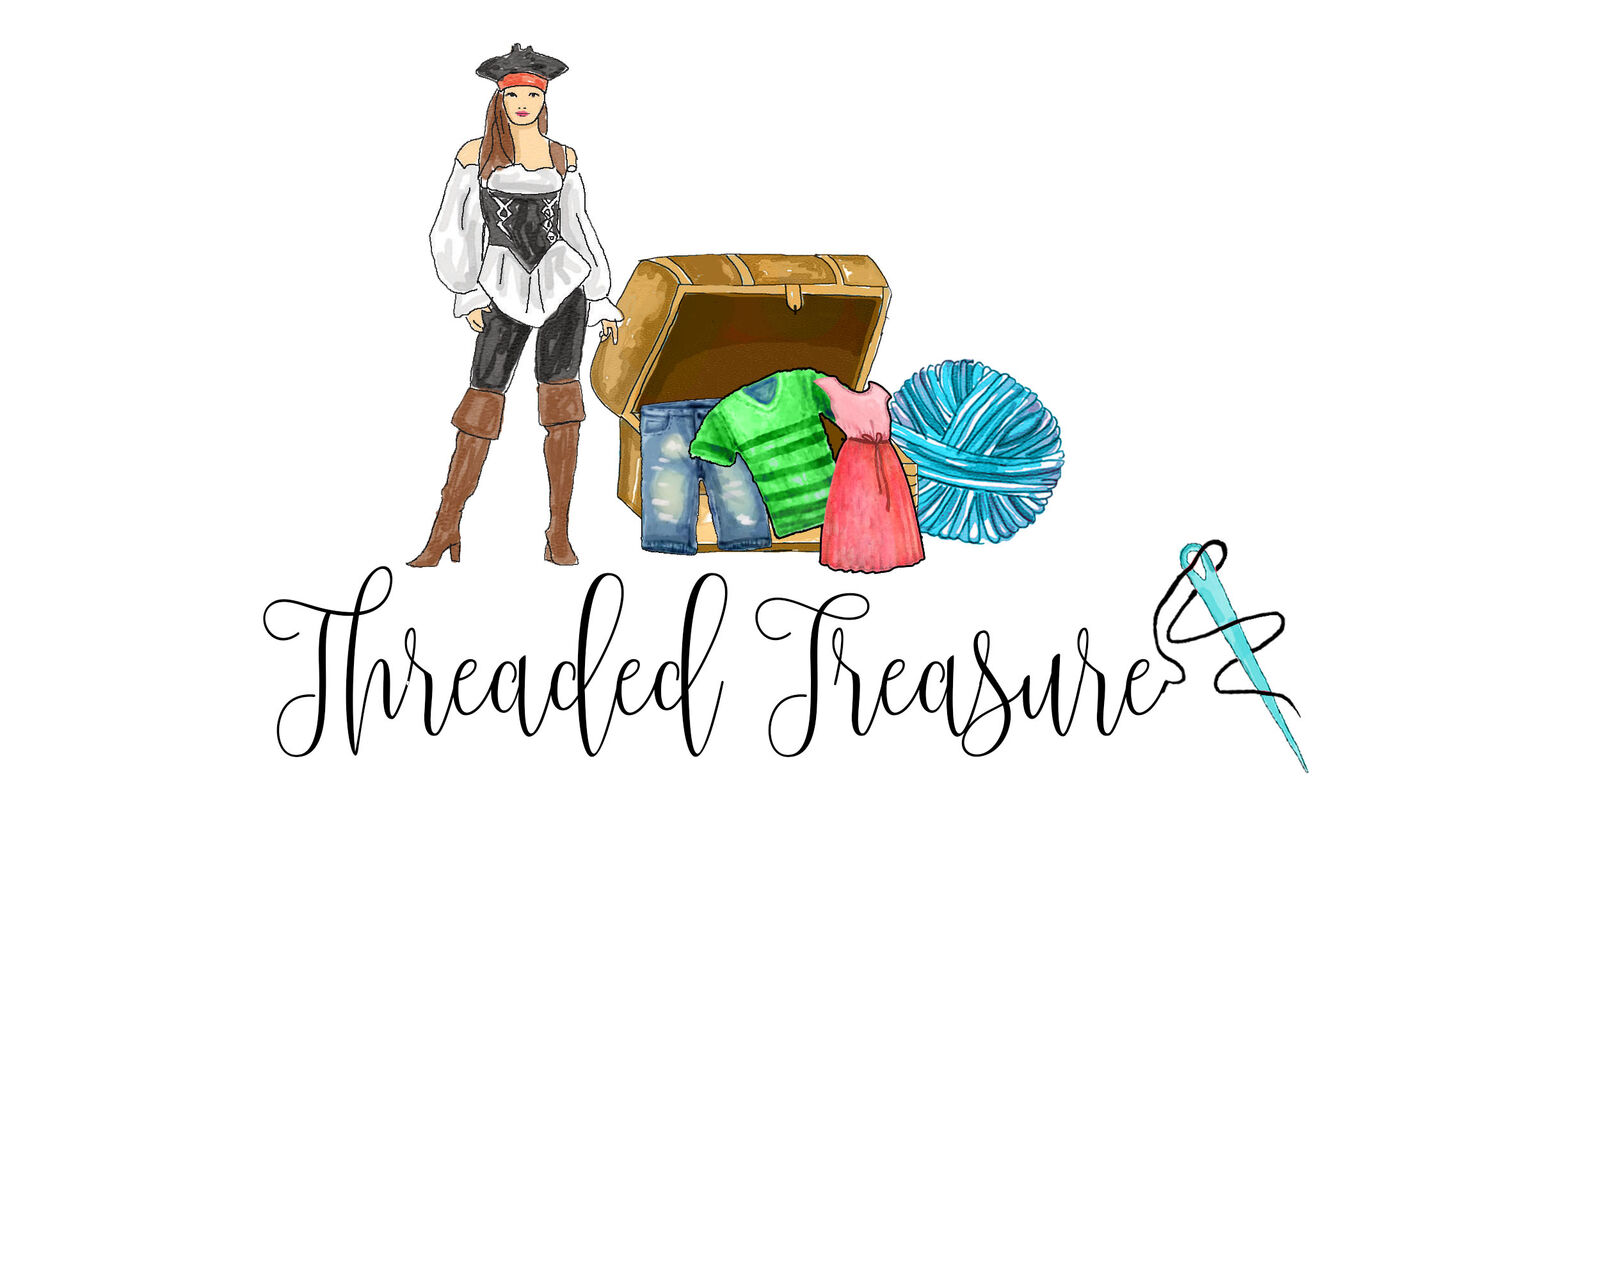 Threaded Treasure